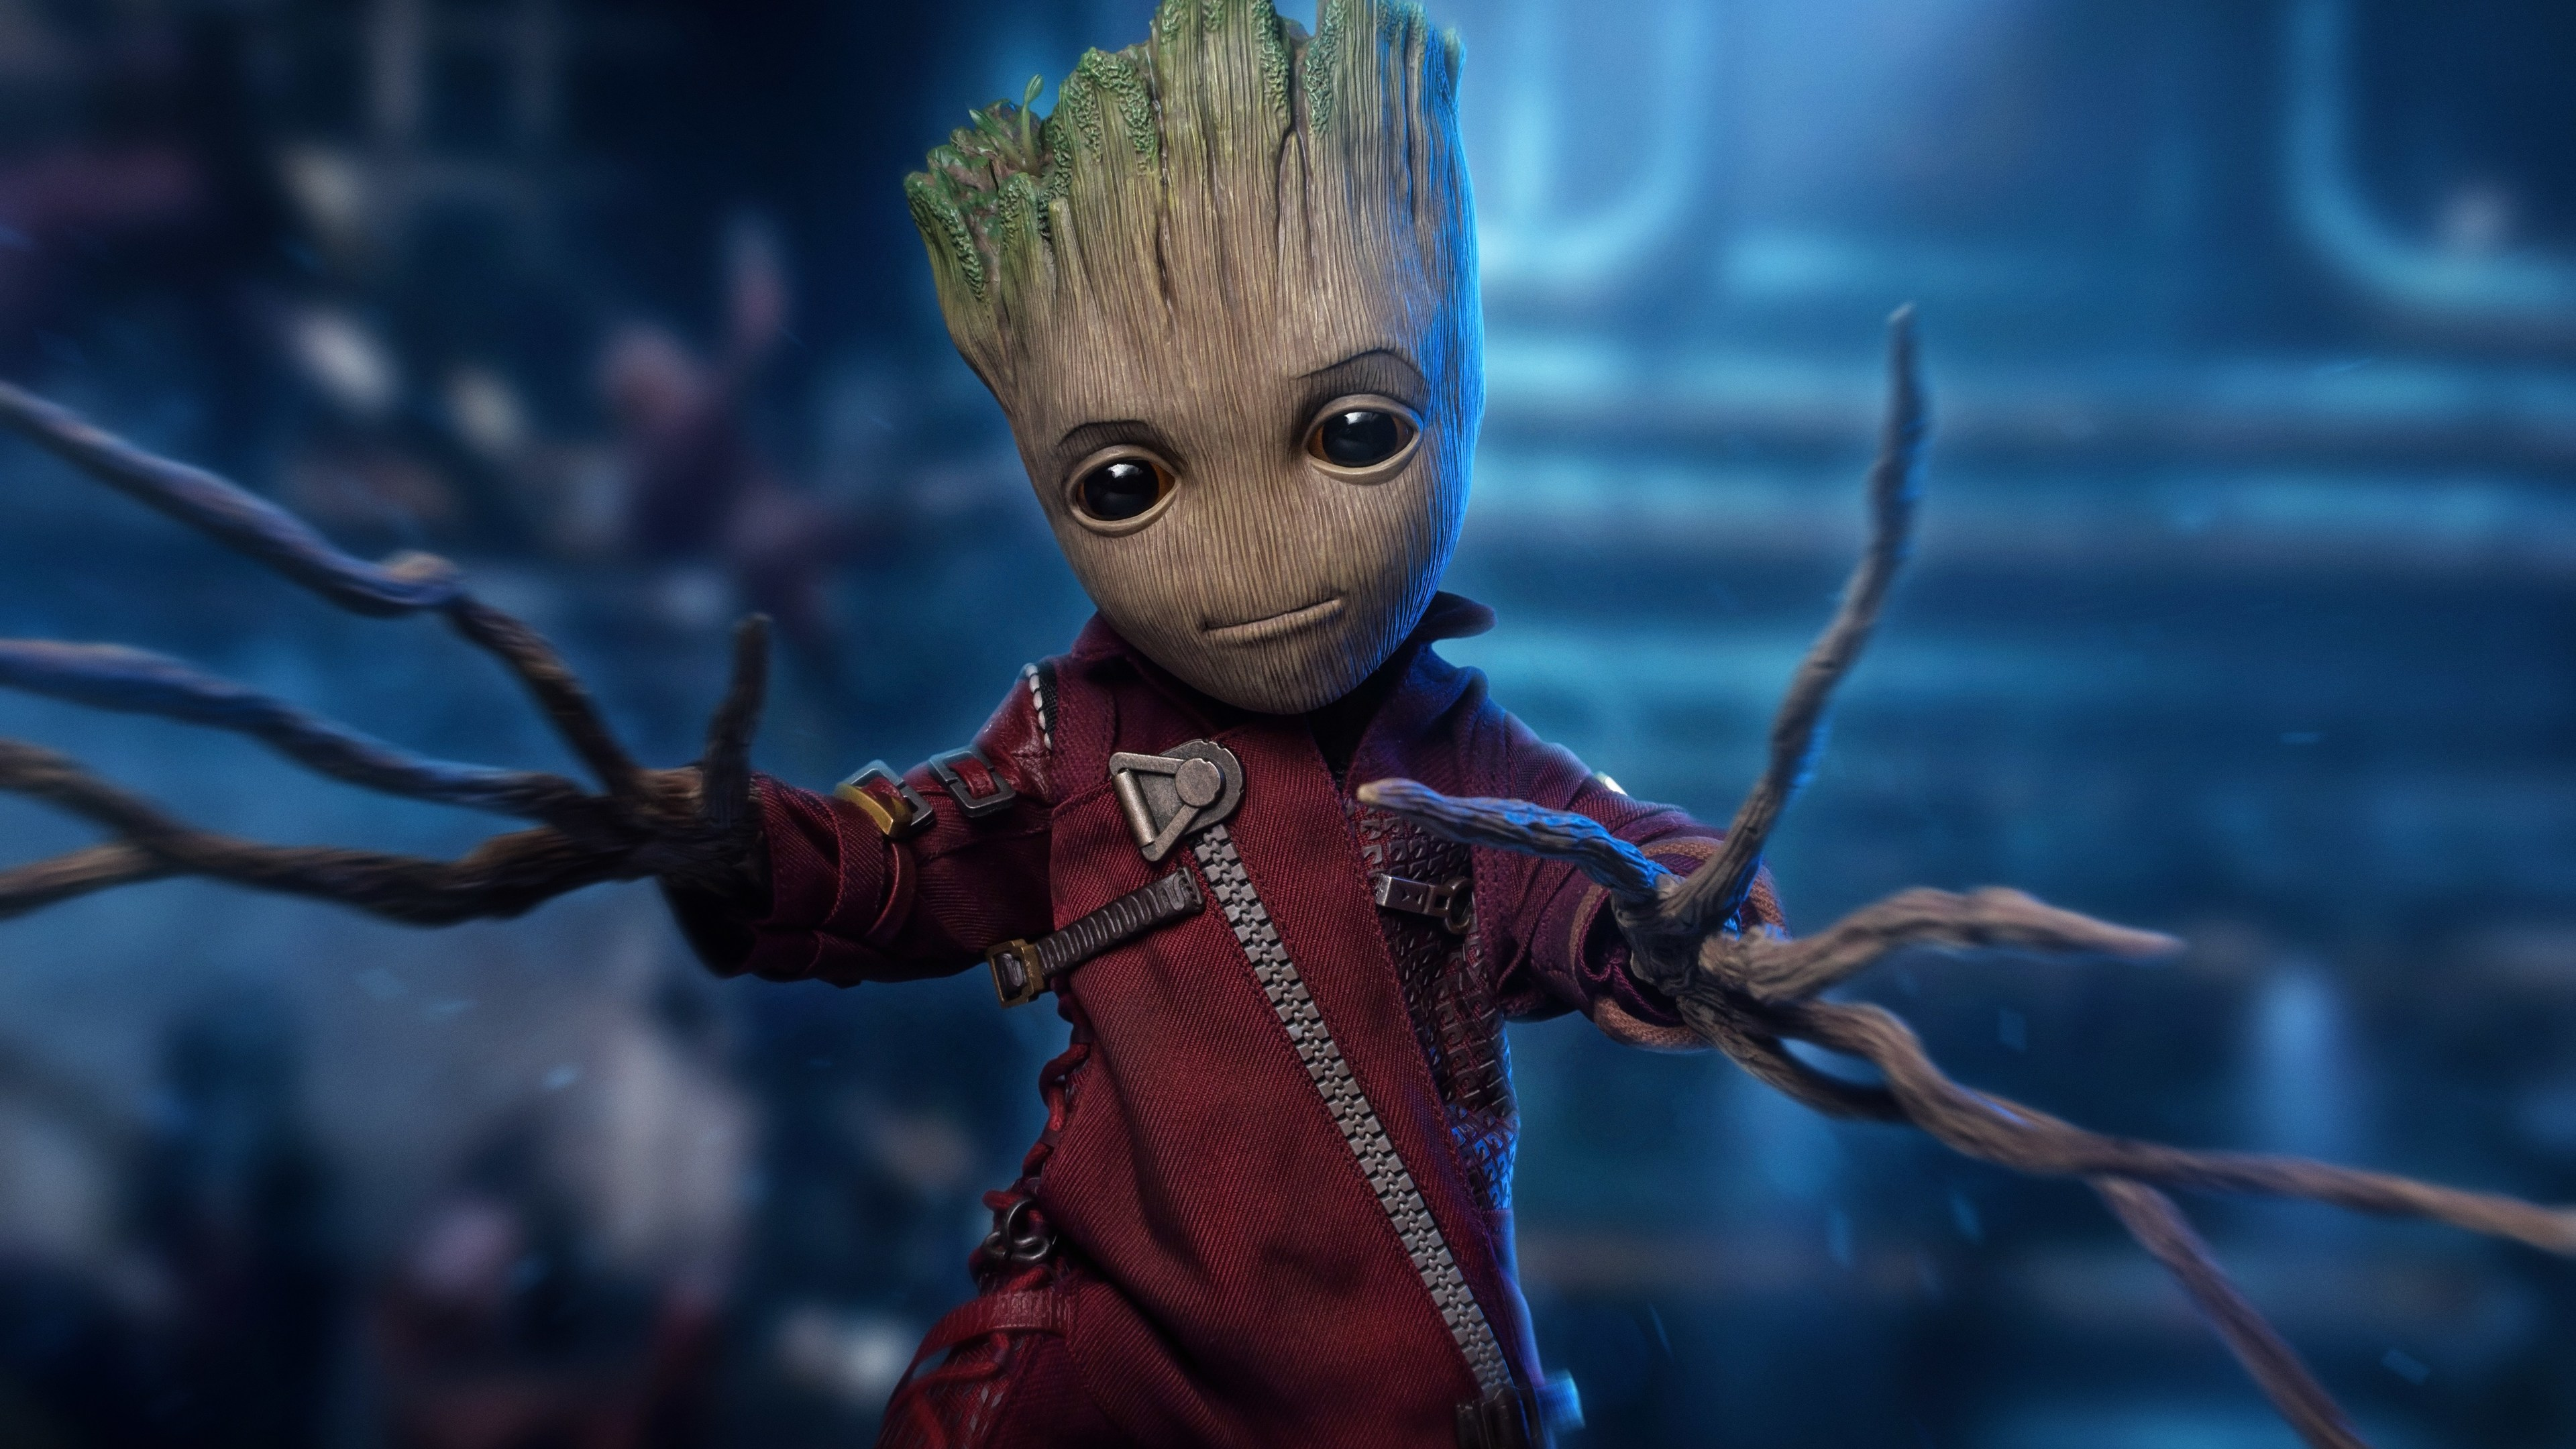 5k Baby Groot Superheroes Wallpapers, Hd-wallpapers, Groot